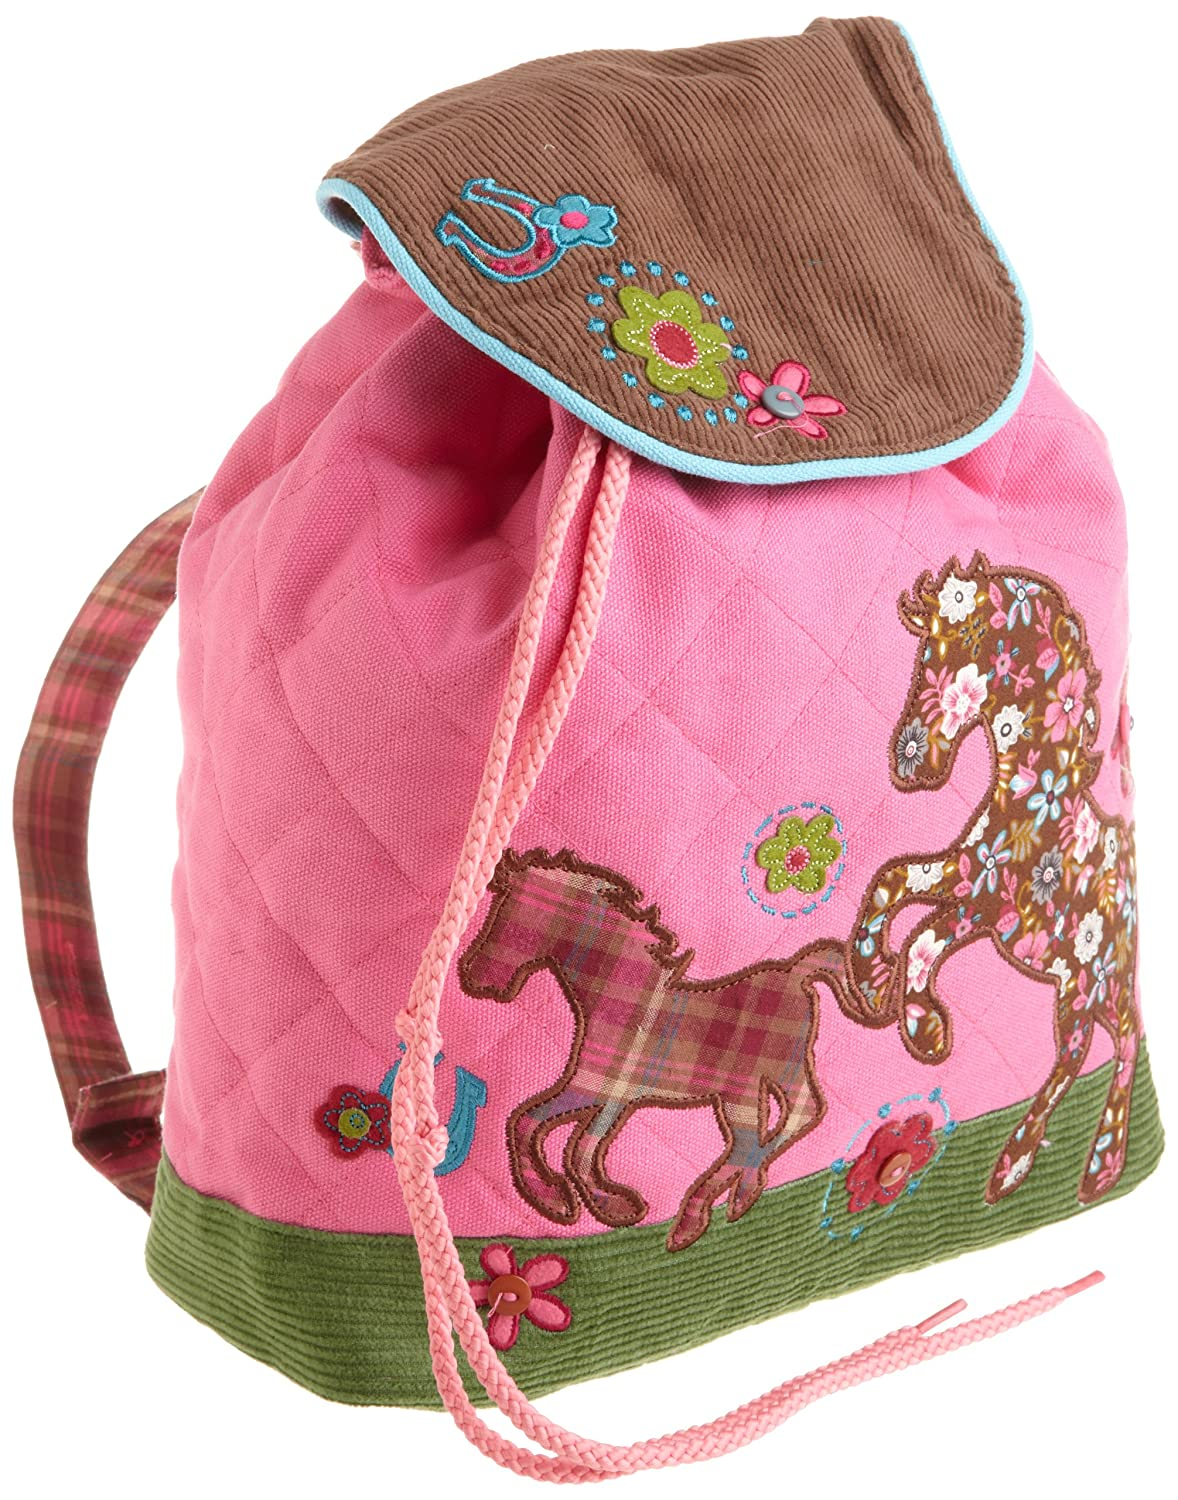 Stephen Joseph Girls Horse Signature Collection Quilted Backpack